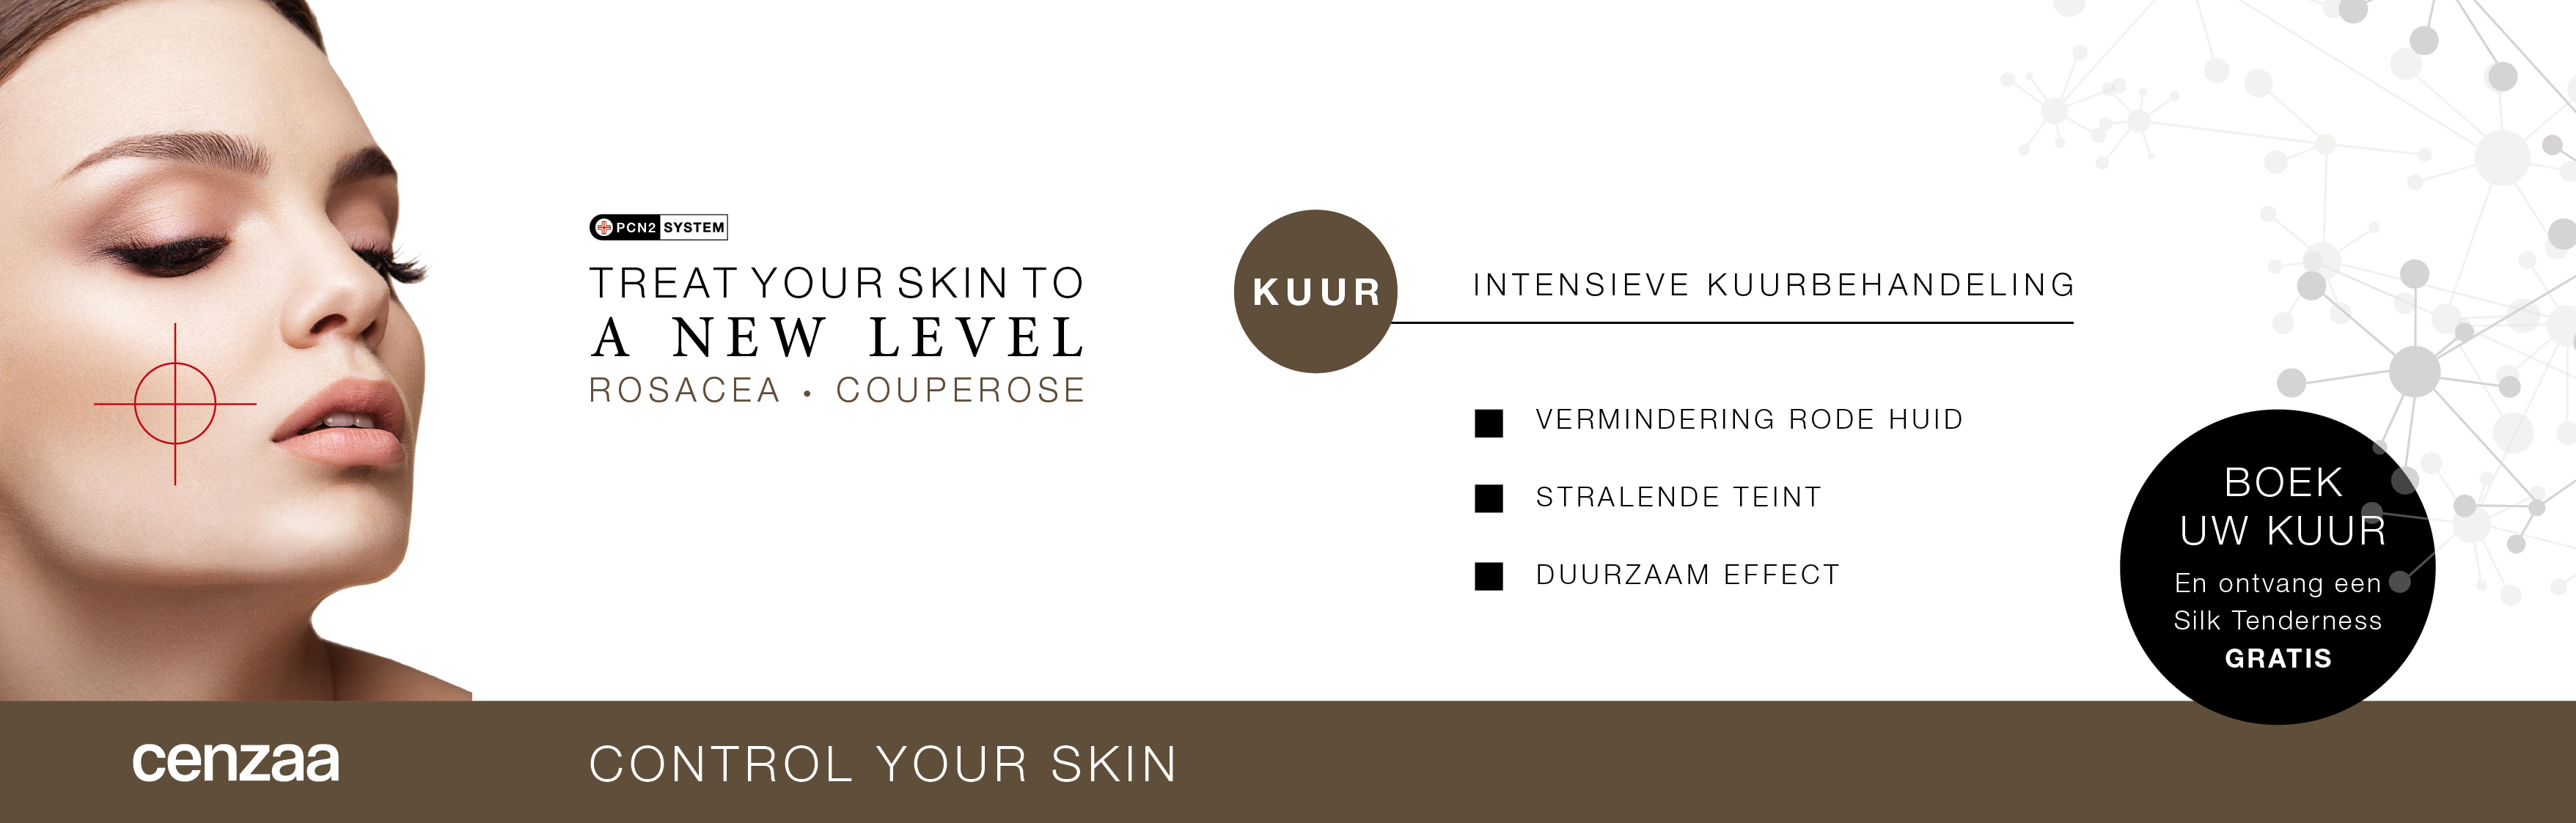 Control Your Skin Website Kuur